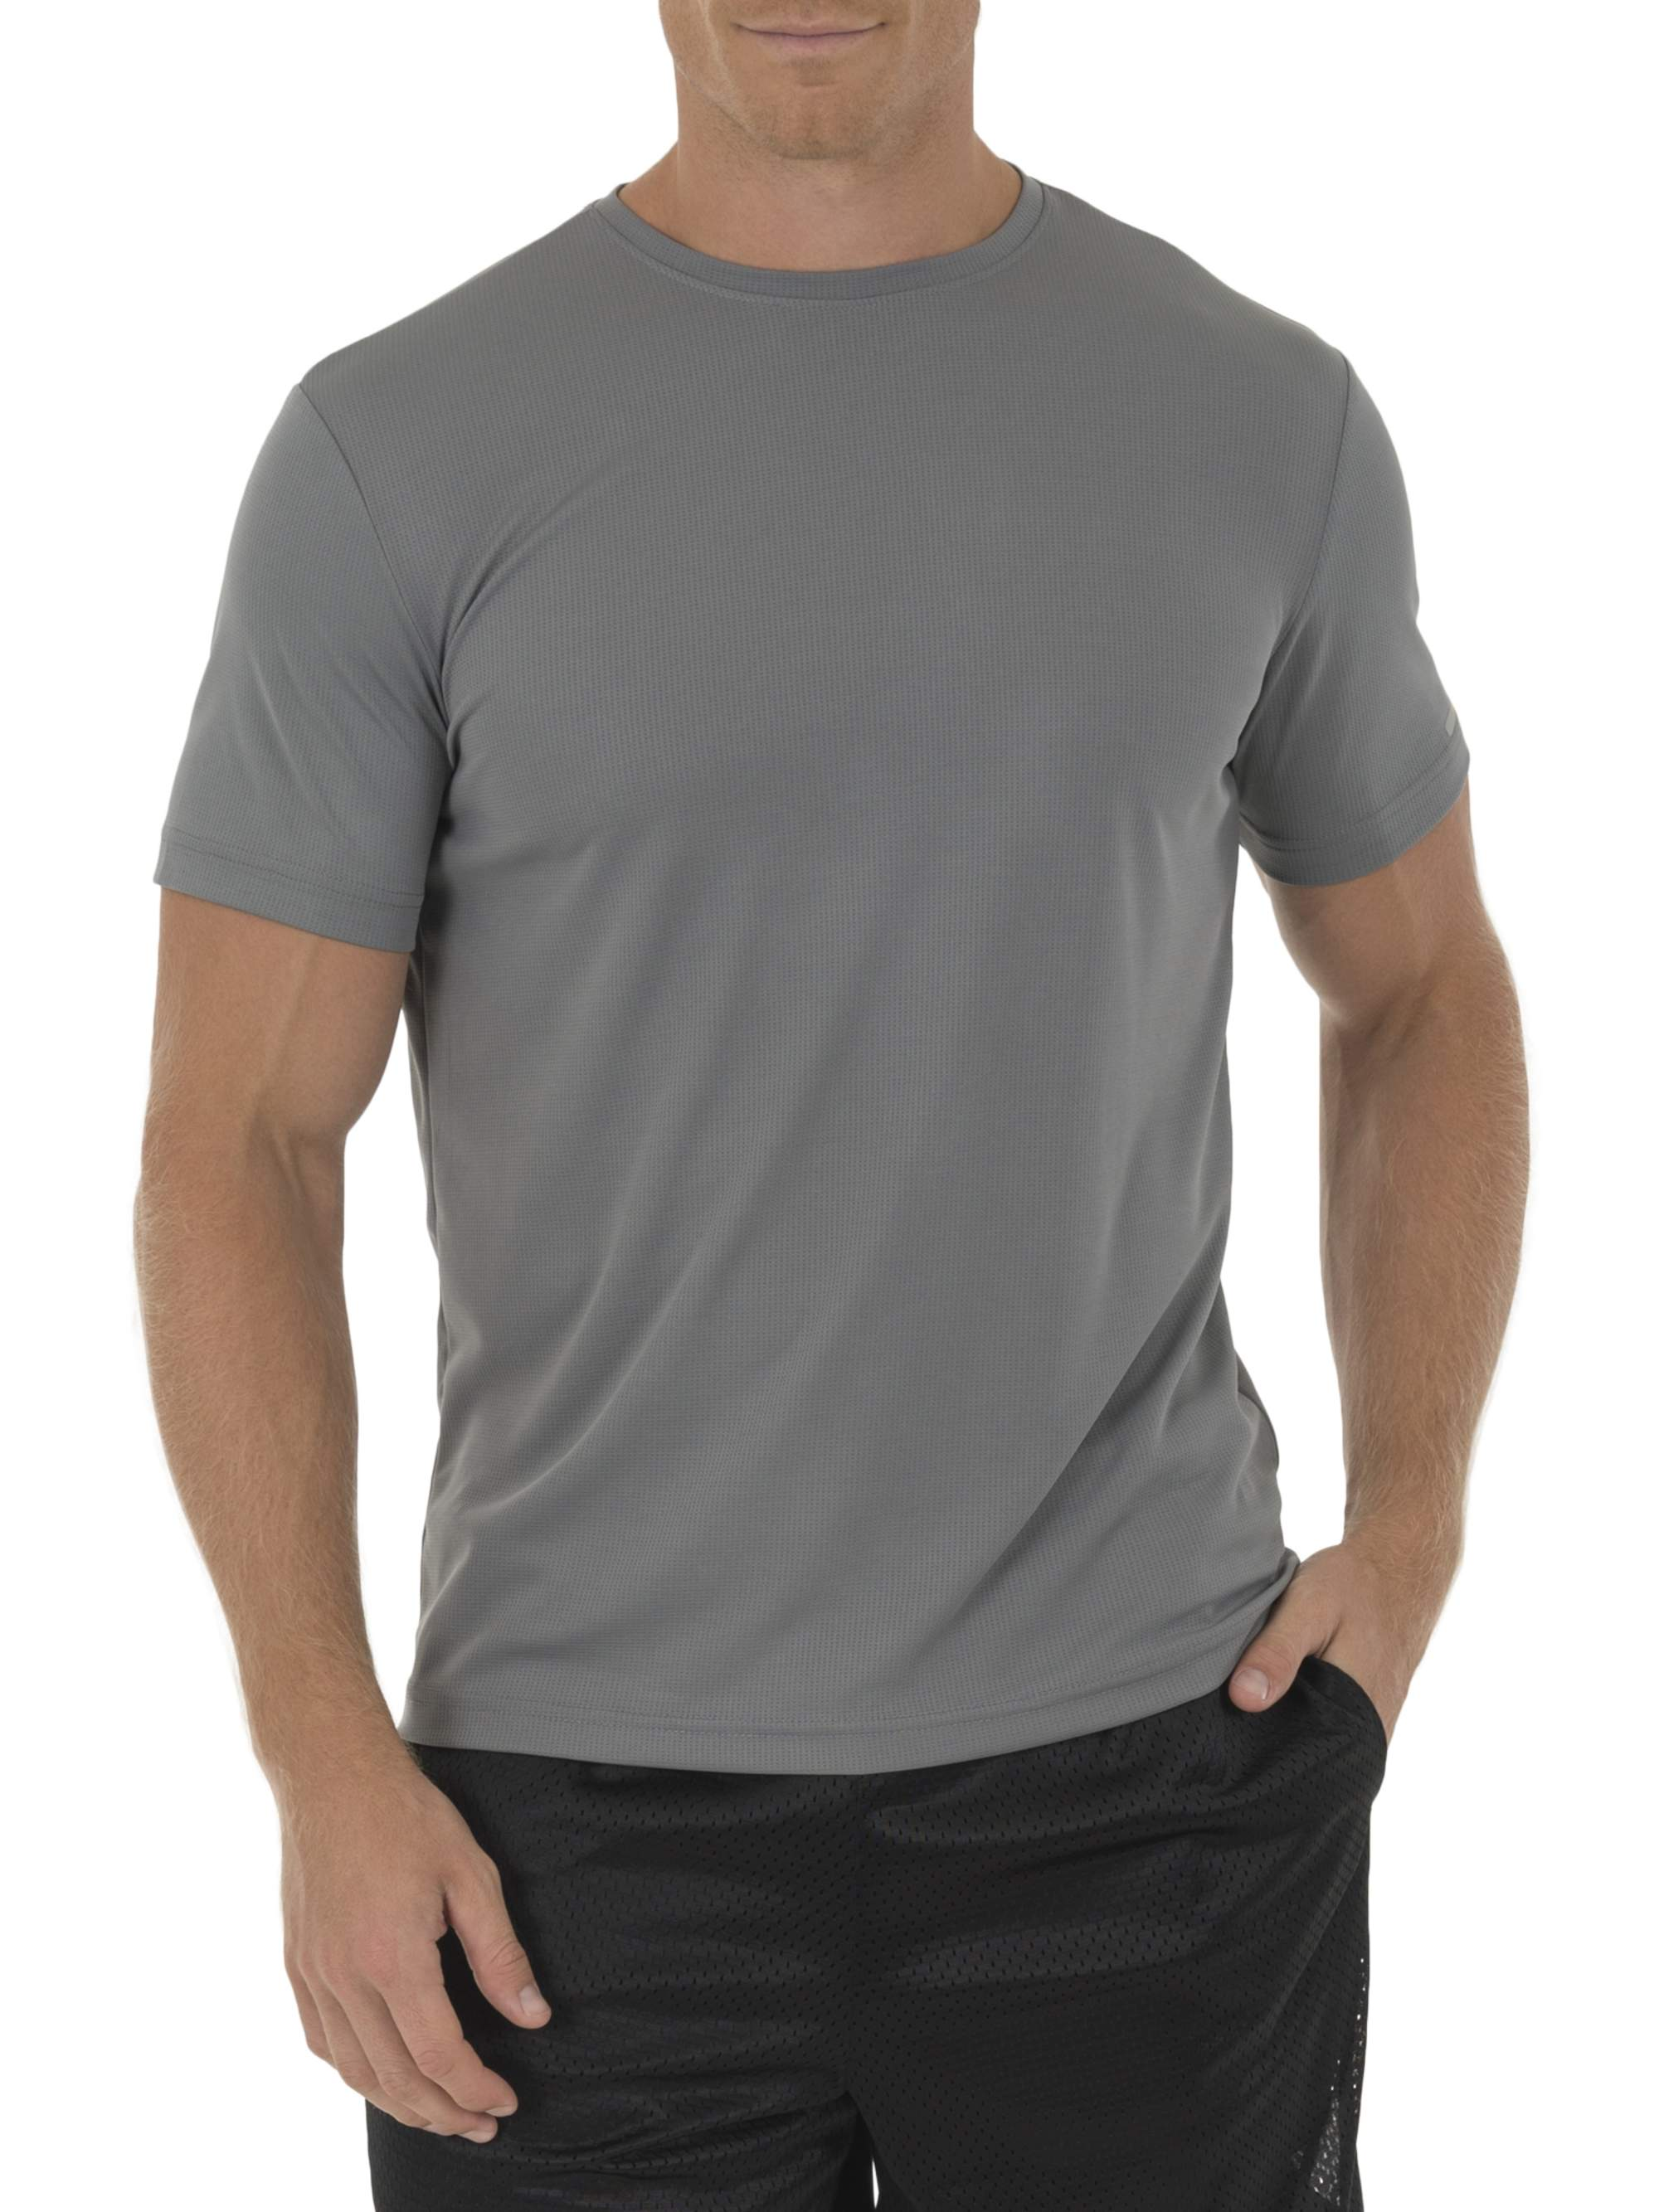 Big Men's Core Quick Dry Short Sleeve Tee